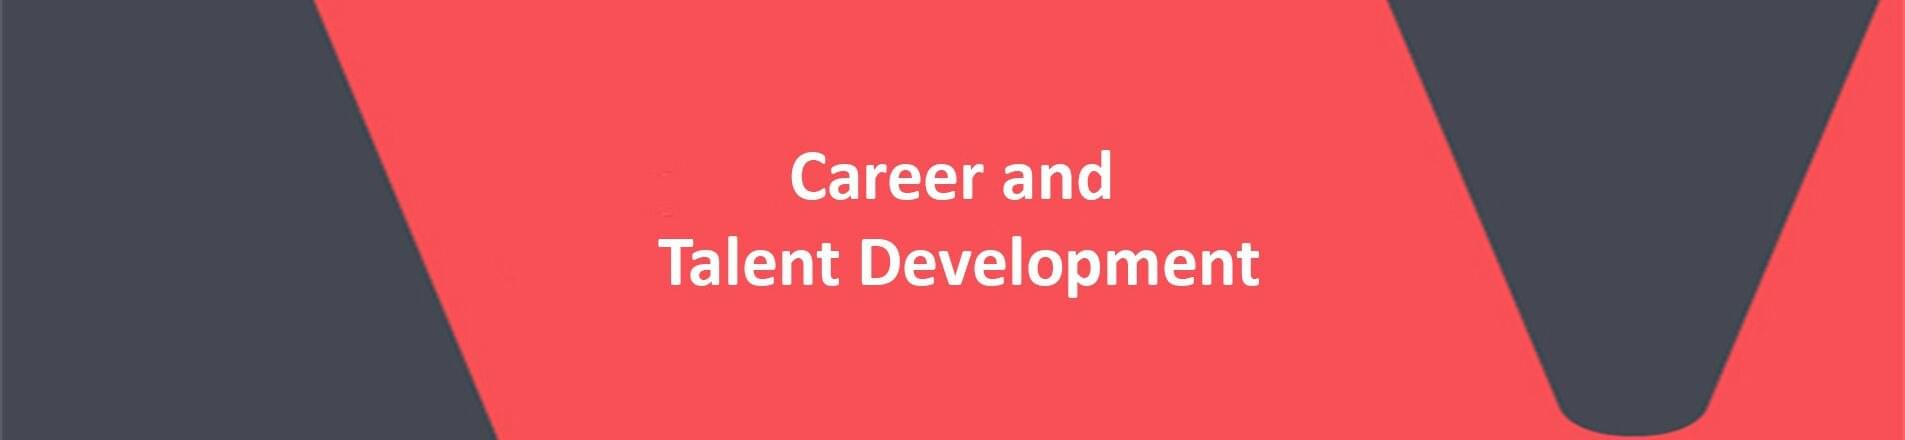 Red background with white text overlaid, spelling Career and Talent Development.